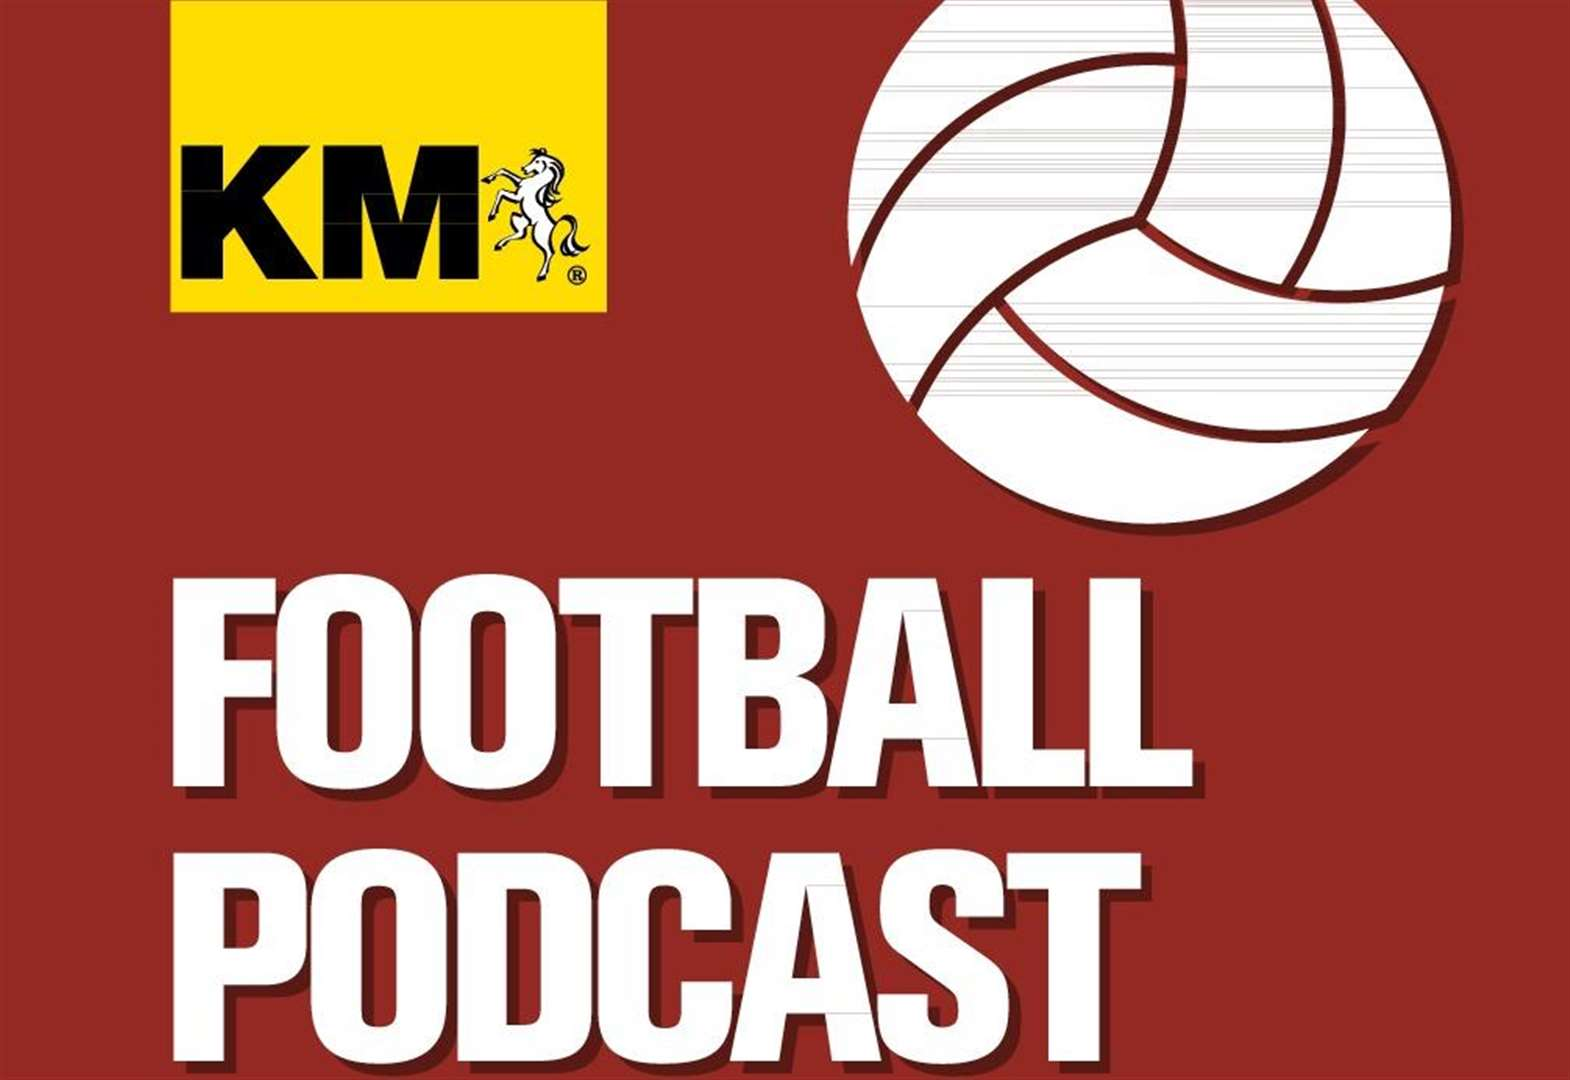 KM Football Podcast episode 8